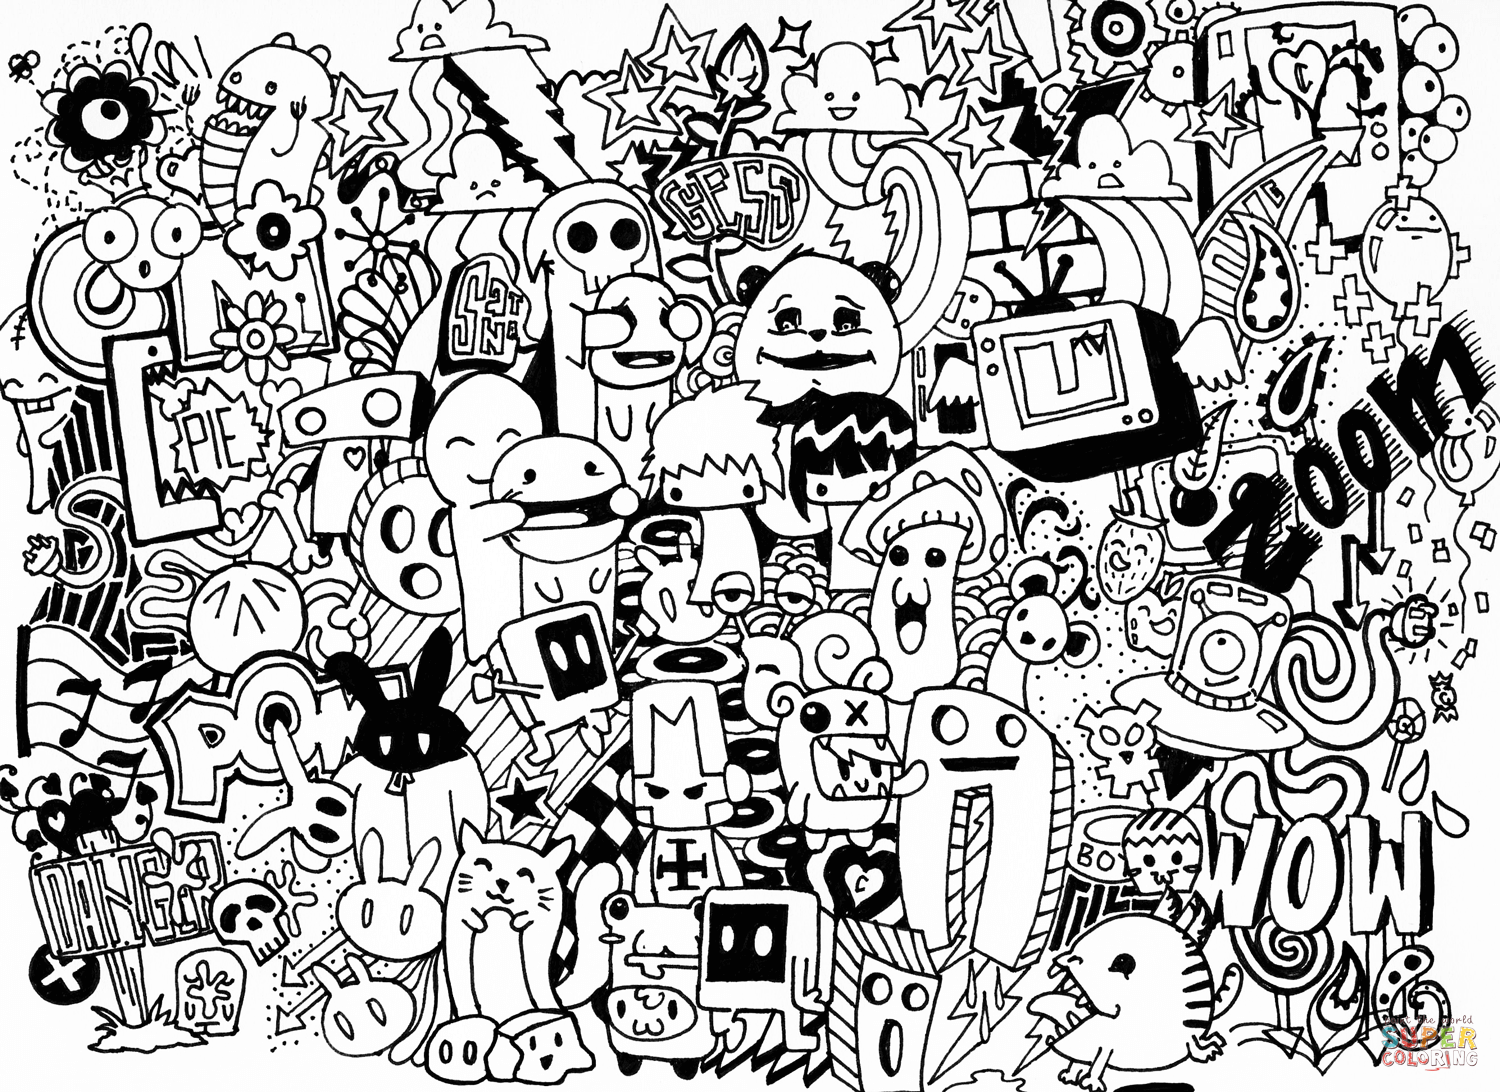 doodle art alley quotes coloring pages doodle art christmas